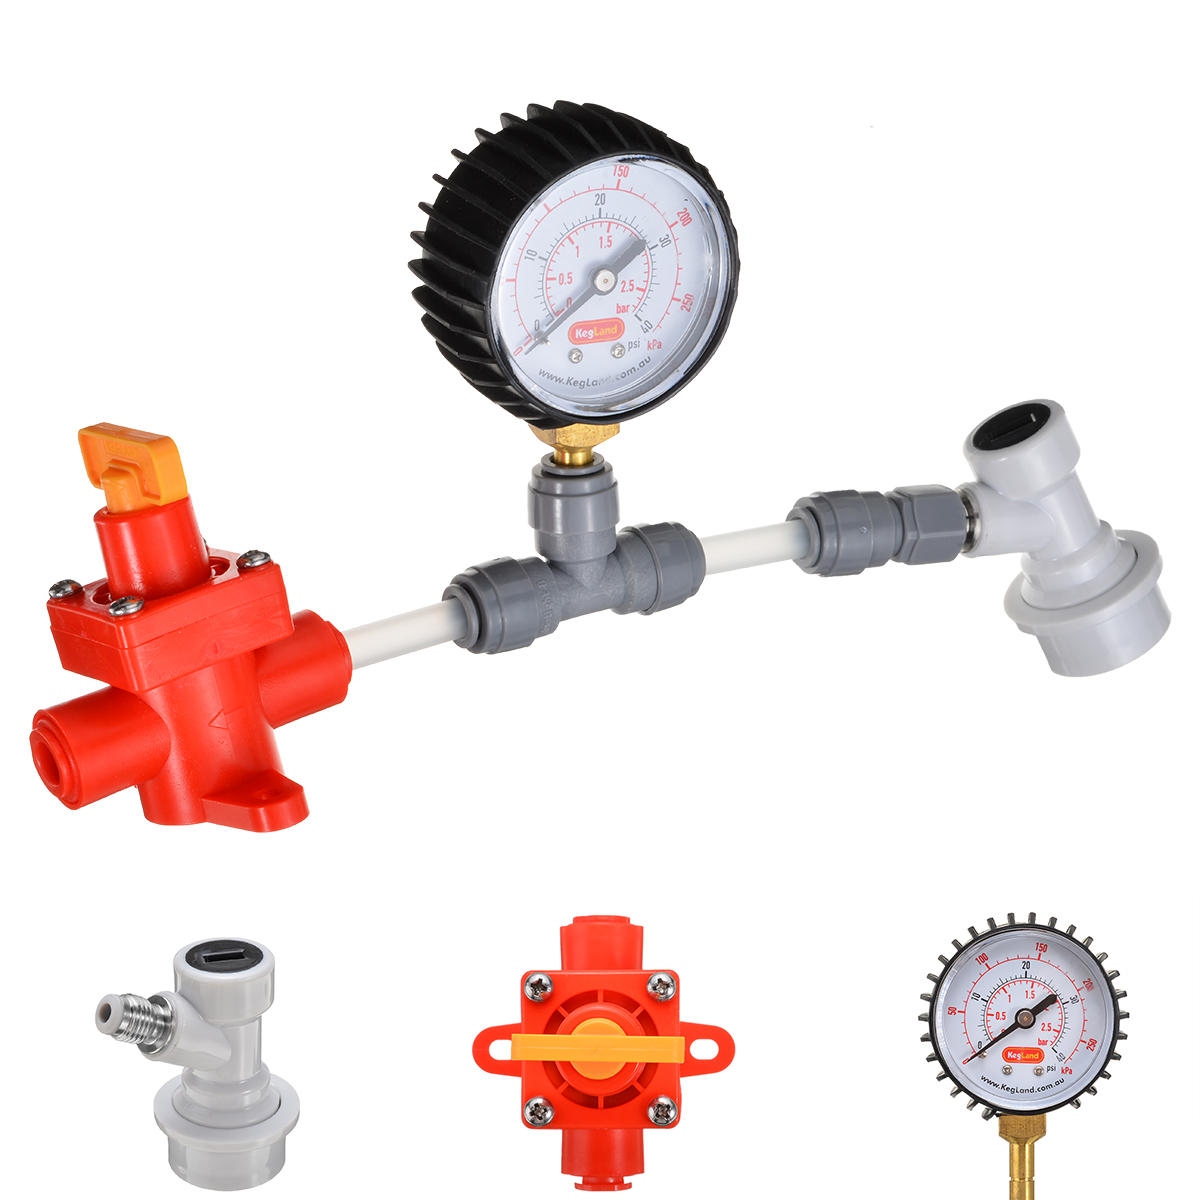 Blowtie Diaphragm Spunding Valve Set Adjustable Pressure Relief Value Gauge Ball For Food Beer Wine Brewing Equipment Tools